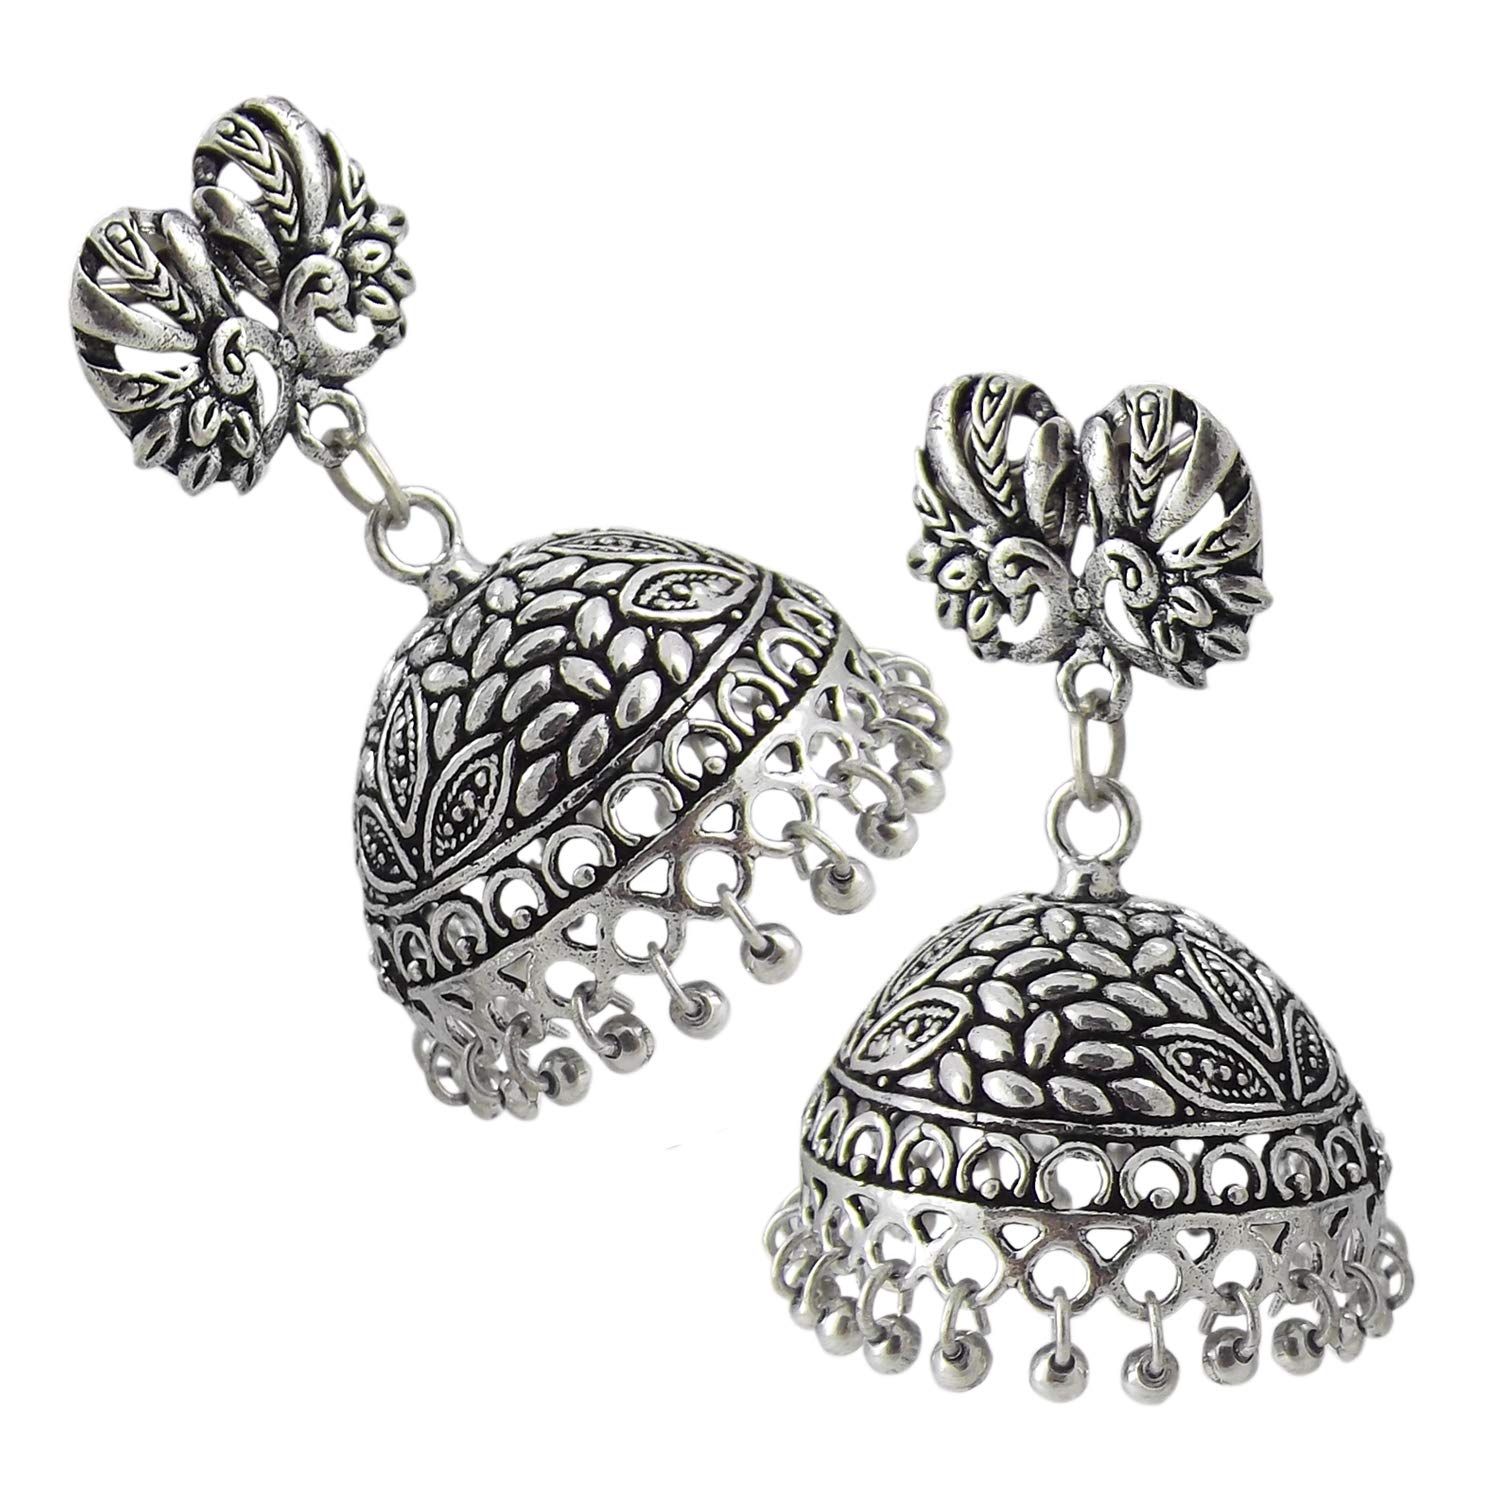 9blings Tribal Collection Silver Oxidized Peacock Jhumka Earrings For Womens//Girls